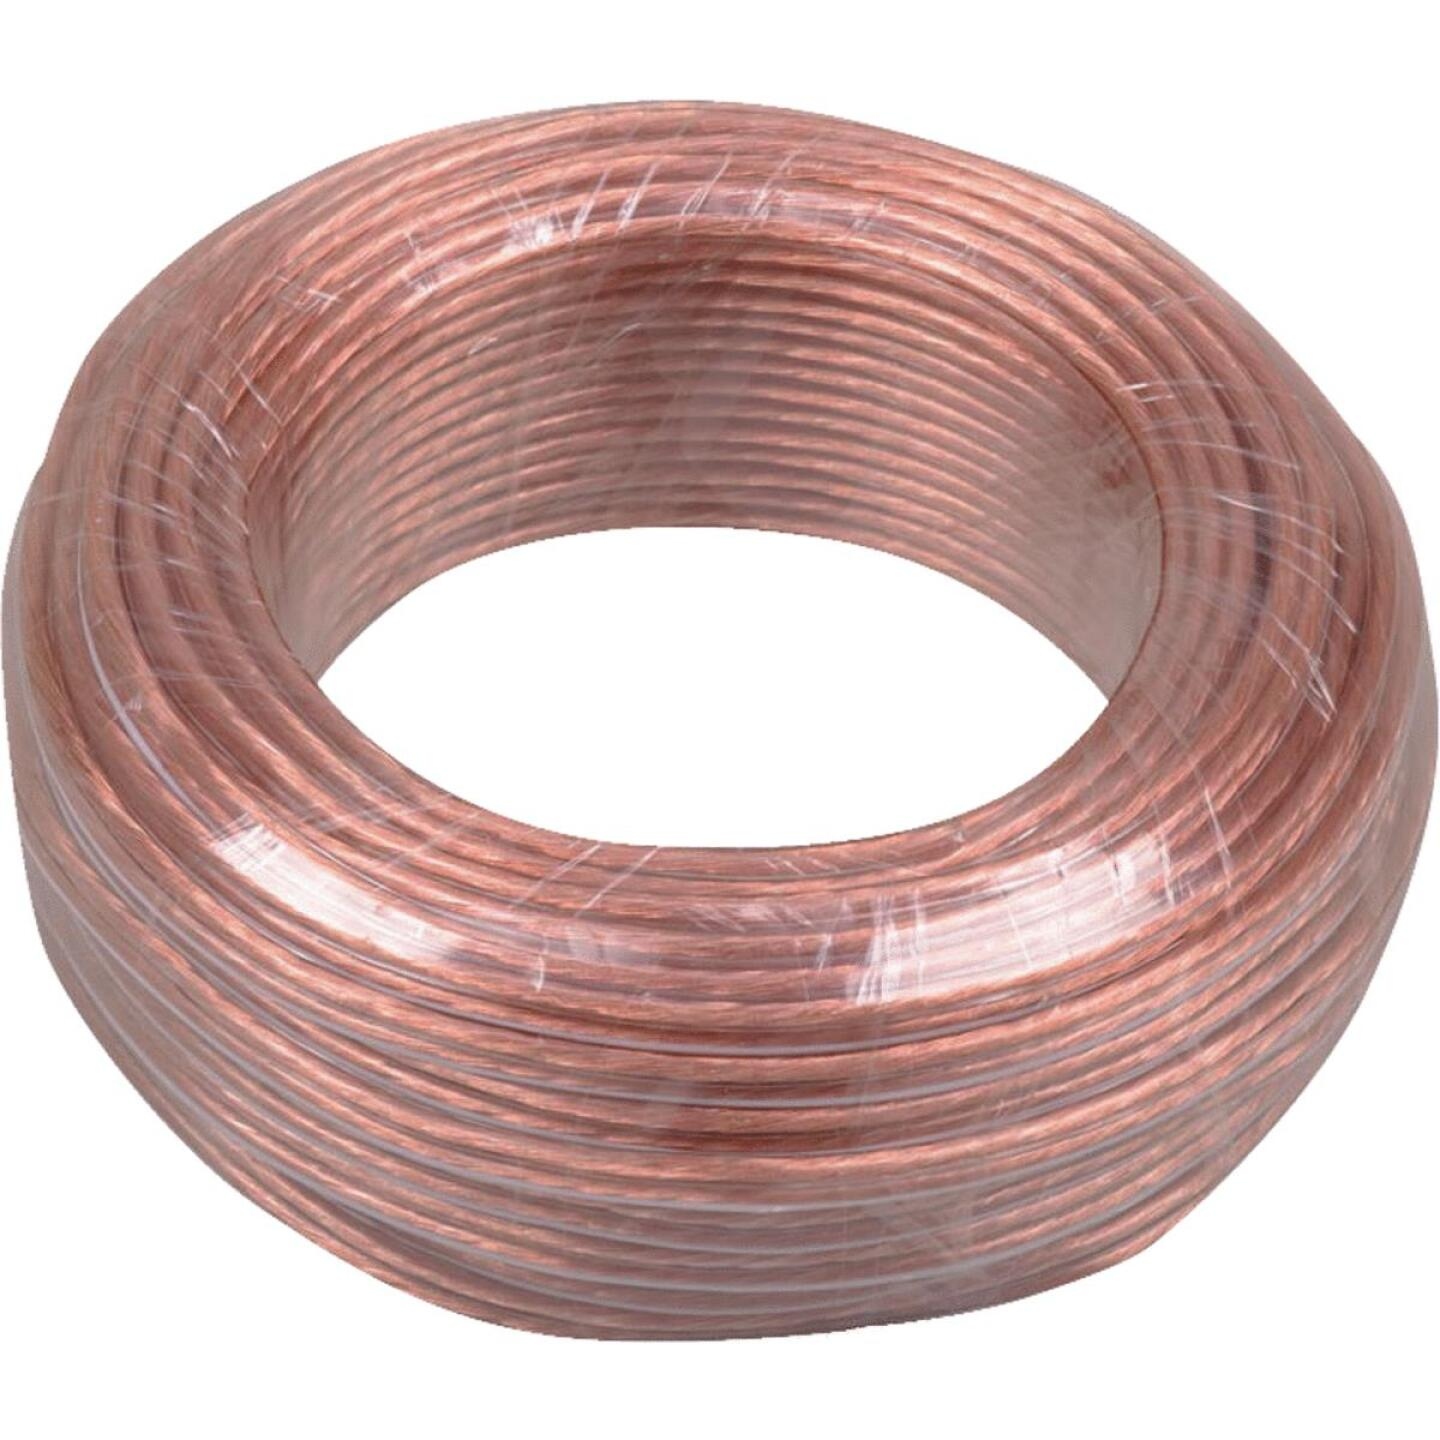 RCA 50 Ft. 18-2 Stranded Speaker Wire Image 4